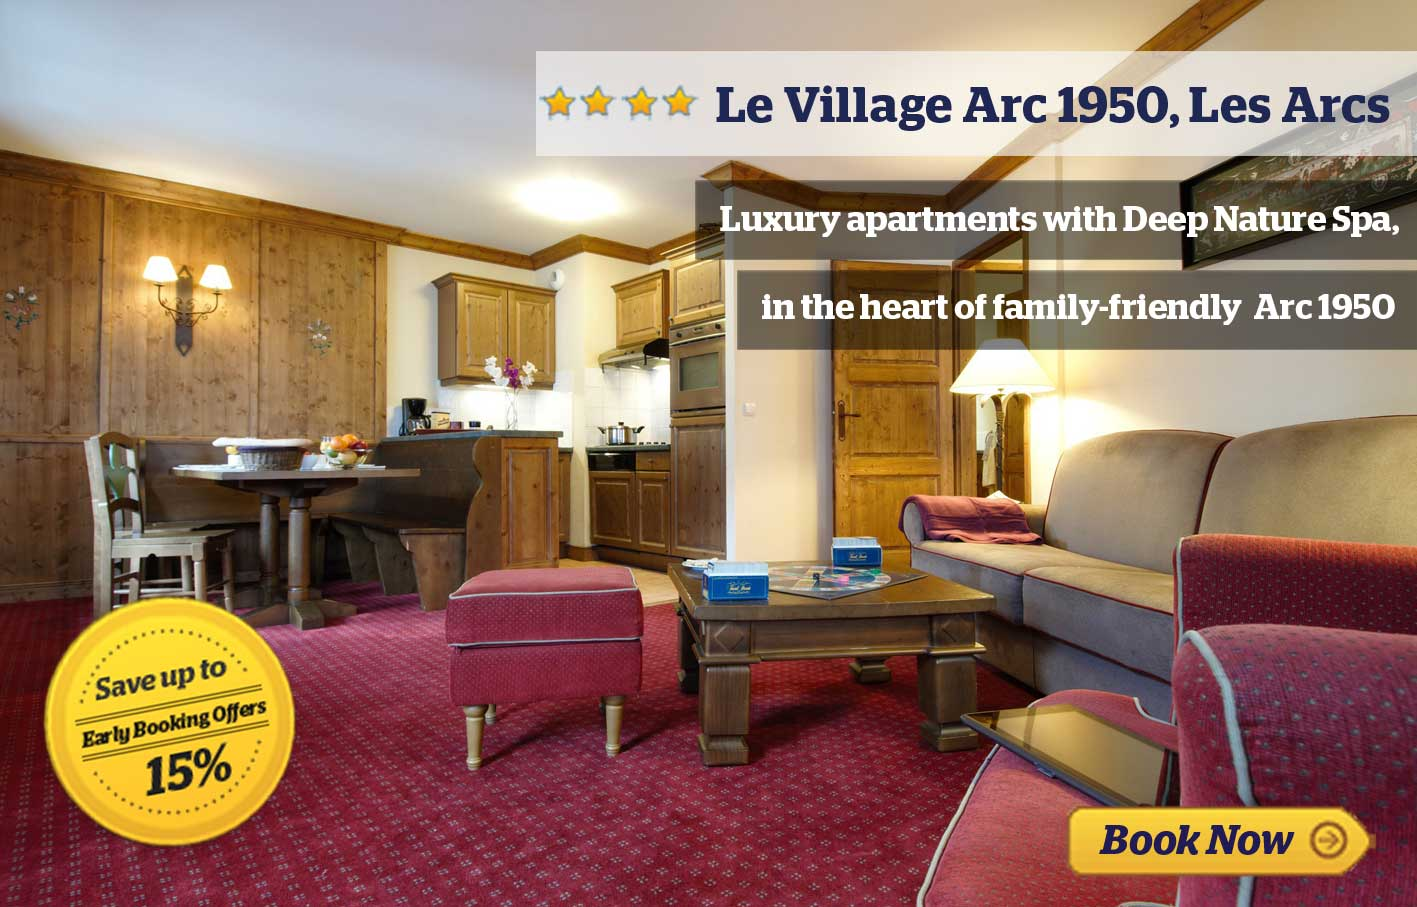 Le Village Arc 1950 - save up to 10%